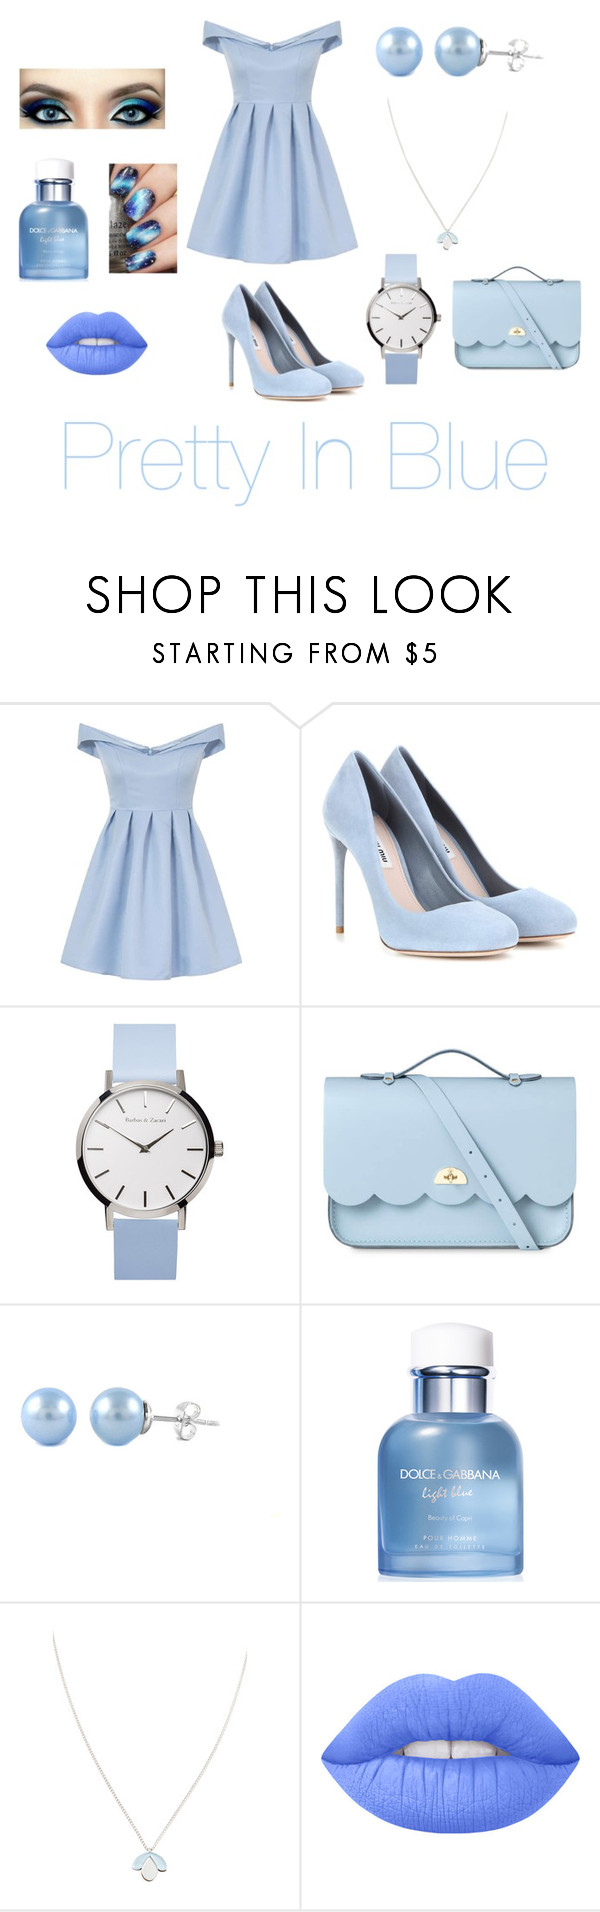 """""""Pretty In Blue 💙"""" by jazzrodgers ❤ liked on Polyvore featuring Chi Chi, Miu Miu, The Cambridge Satchel Company, Dolce&Gabbana, Wolf & Moon and Lime Crime"""